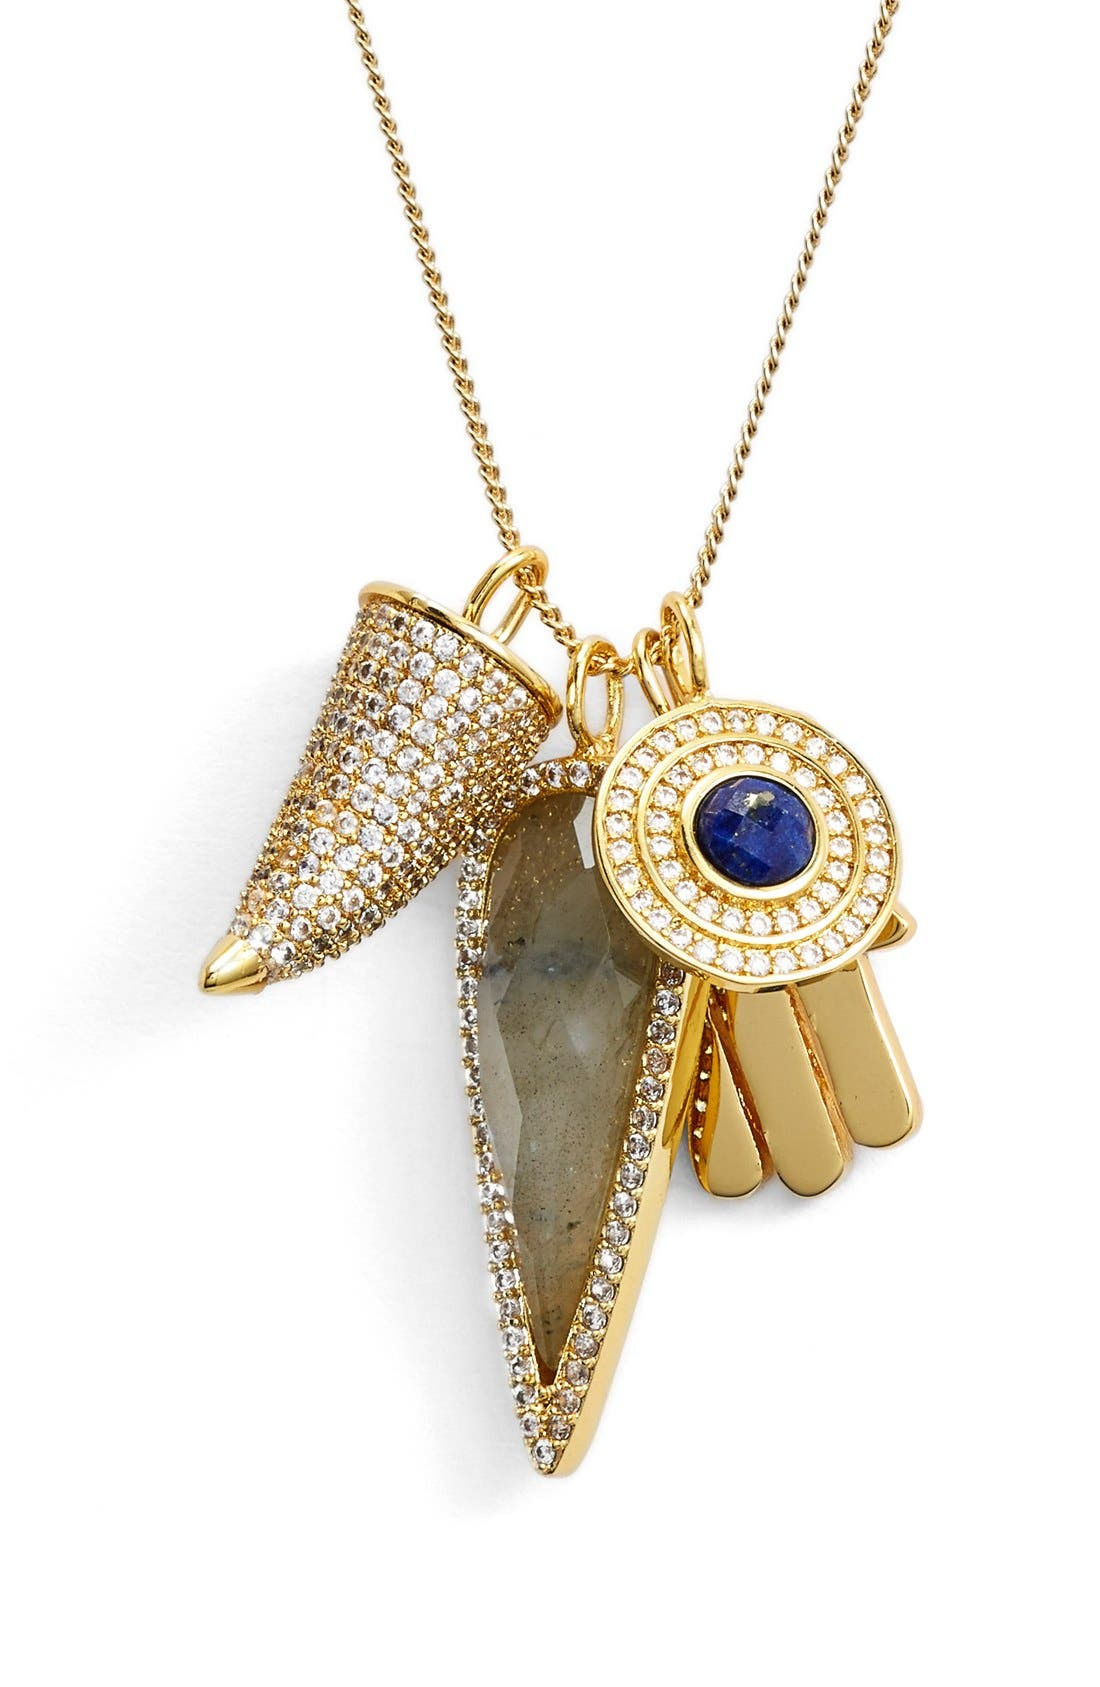 Main Image - Melanie Auld 'Protection' Charm Necklace